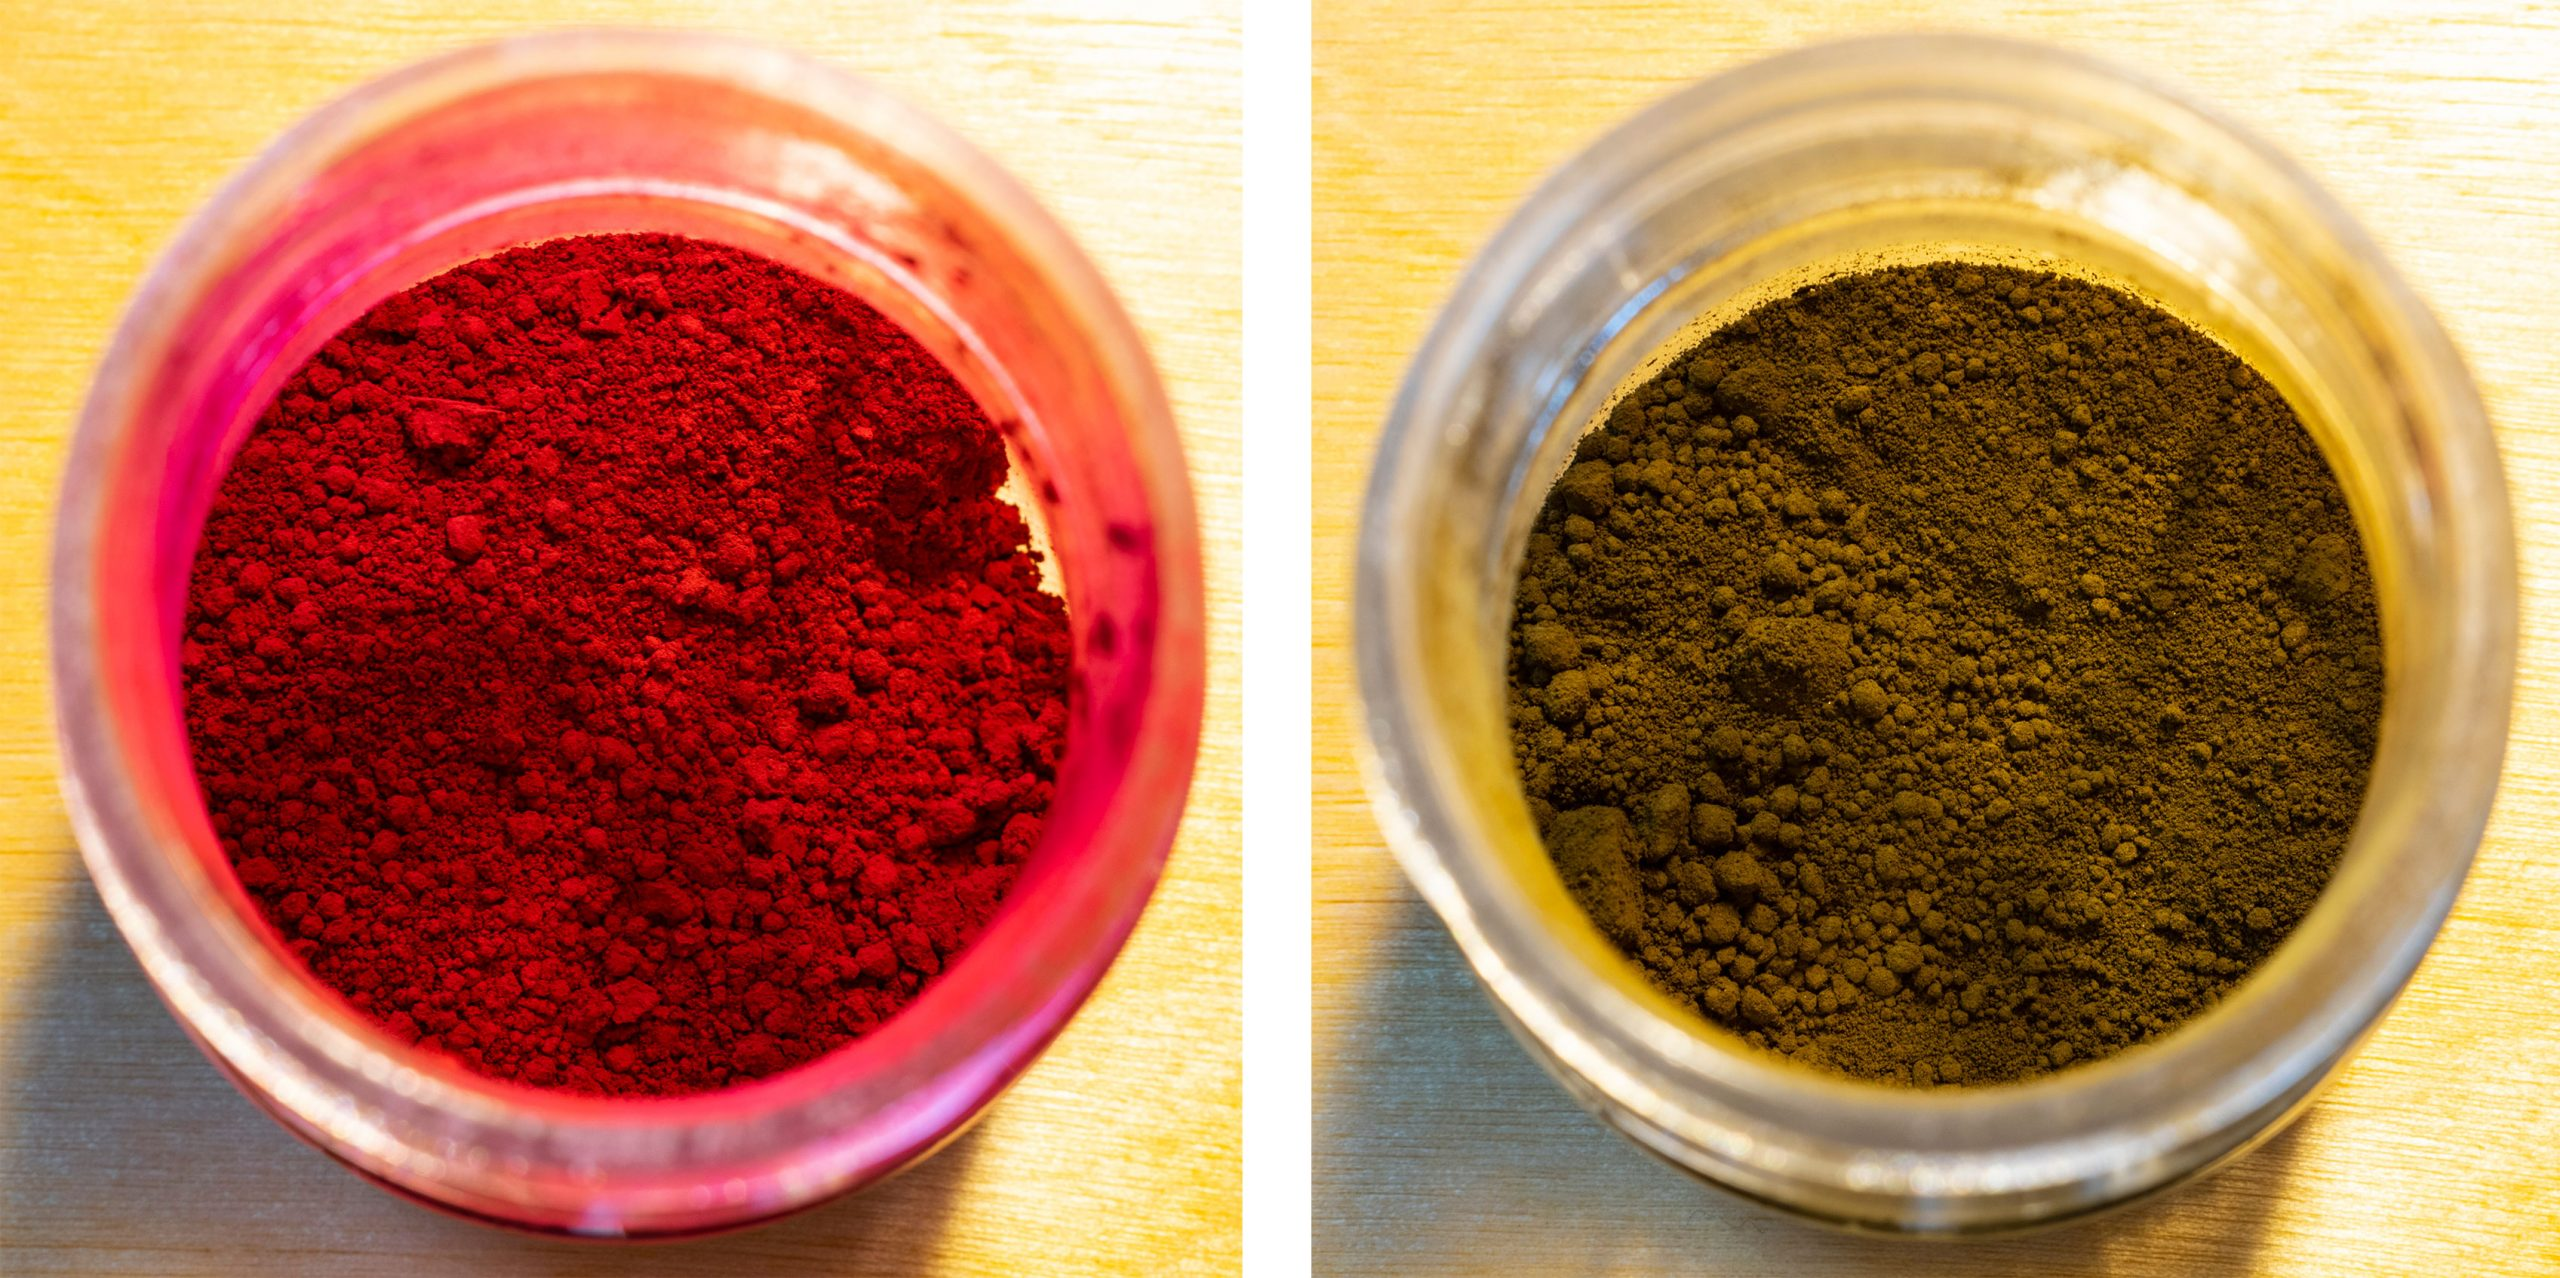 two containers of pigment, one red, one brown.